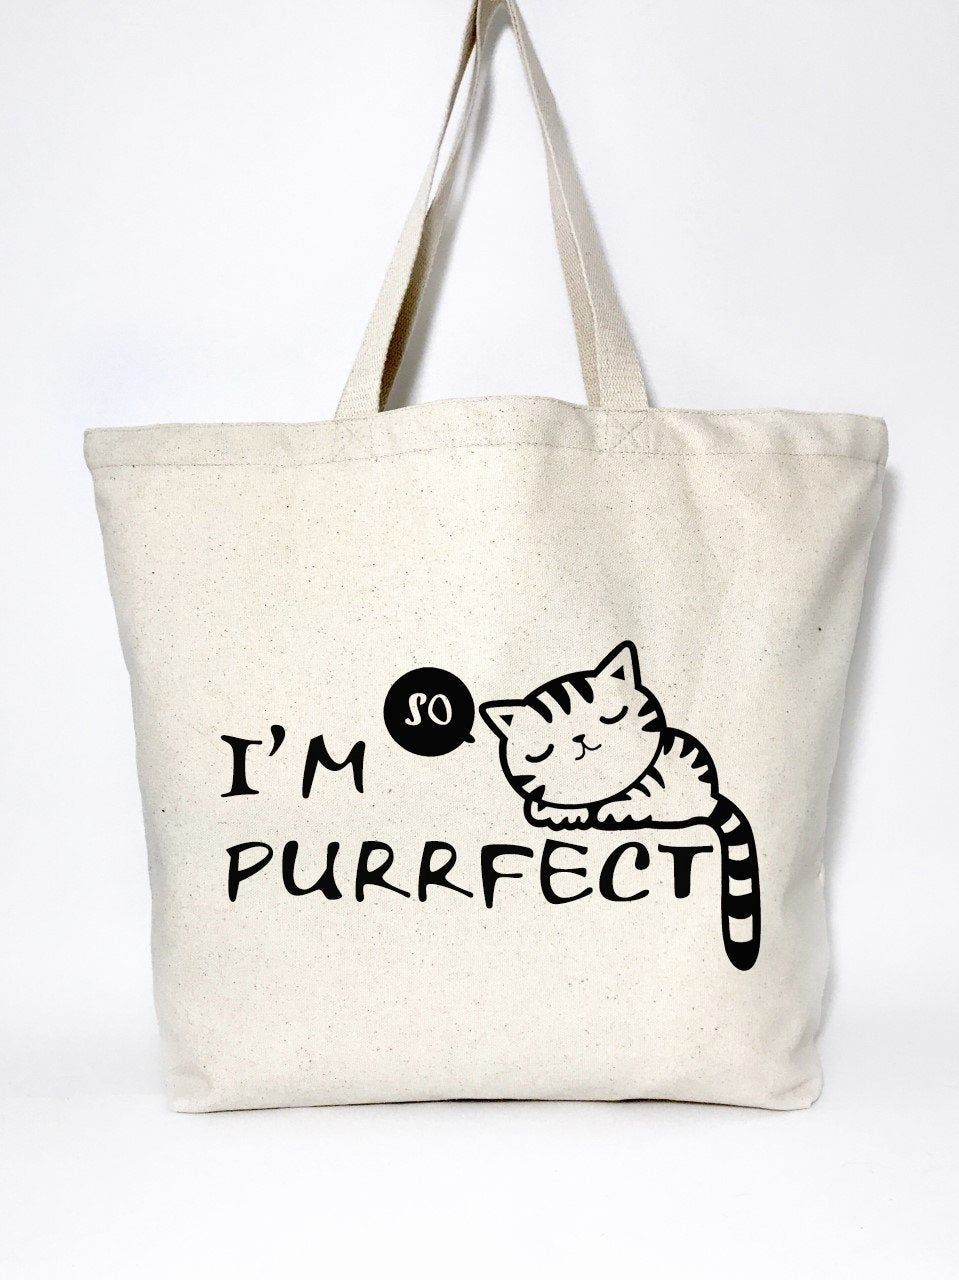 cat purse//cat tote bag//cat lover gift//totes//canvas bag//canvas tote bag//cat eco bag//handbag//cats//eco bag//cat//tote//bag